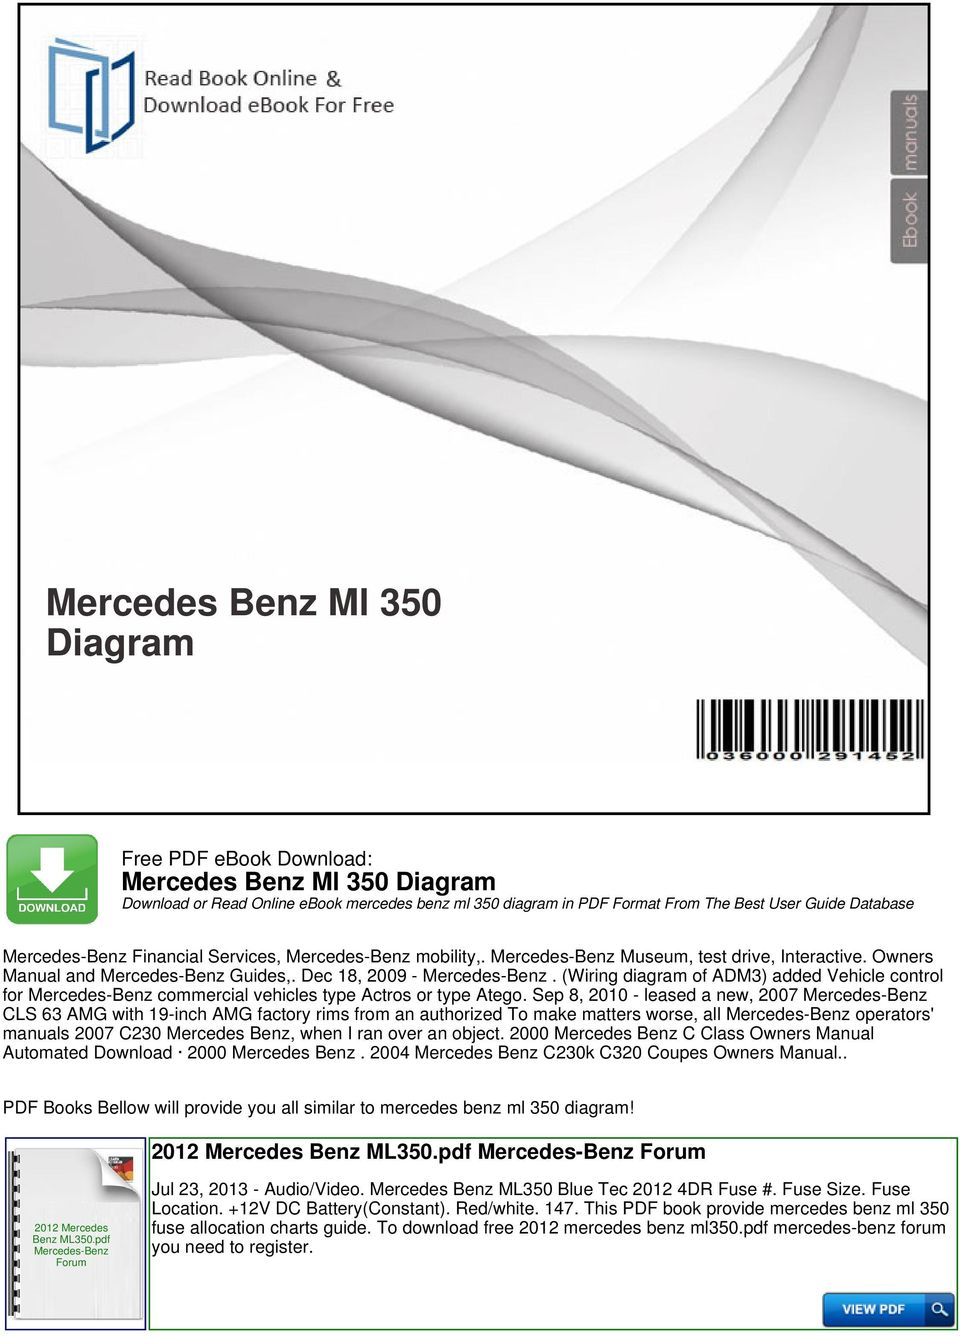 medium resolution of  mercedes c230 fuse diagram sep 8 2010 leased a new 2007 cls 63 amg with 19